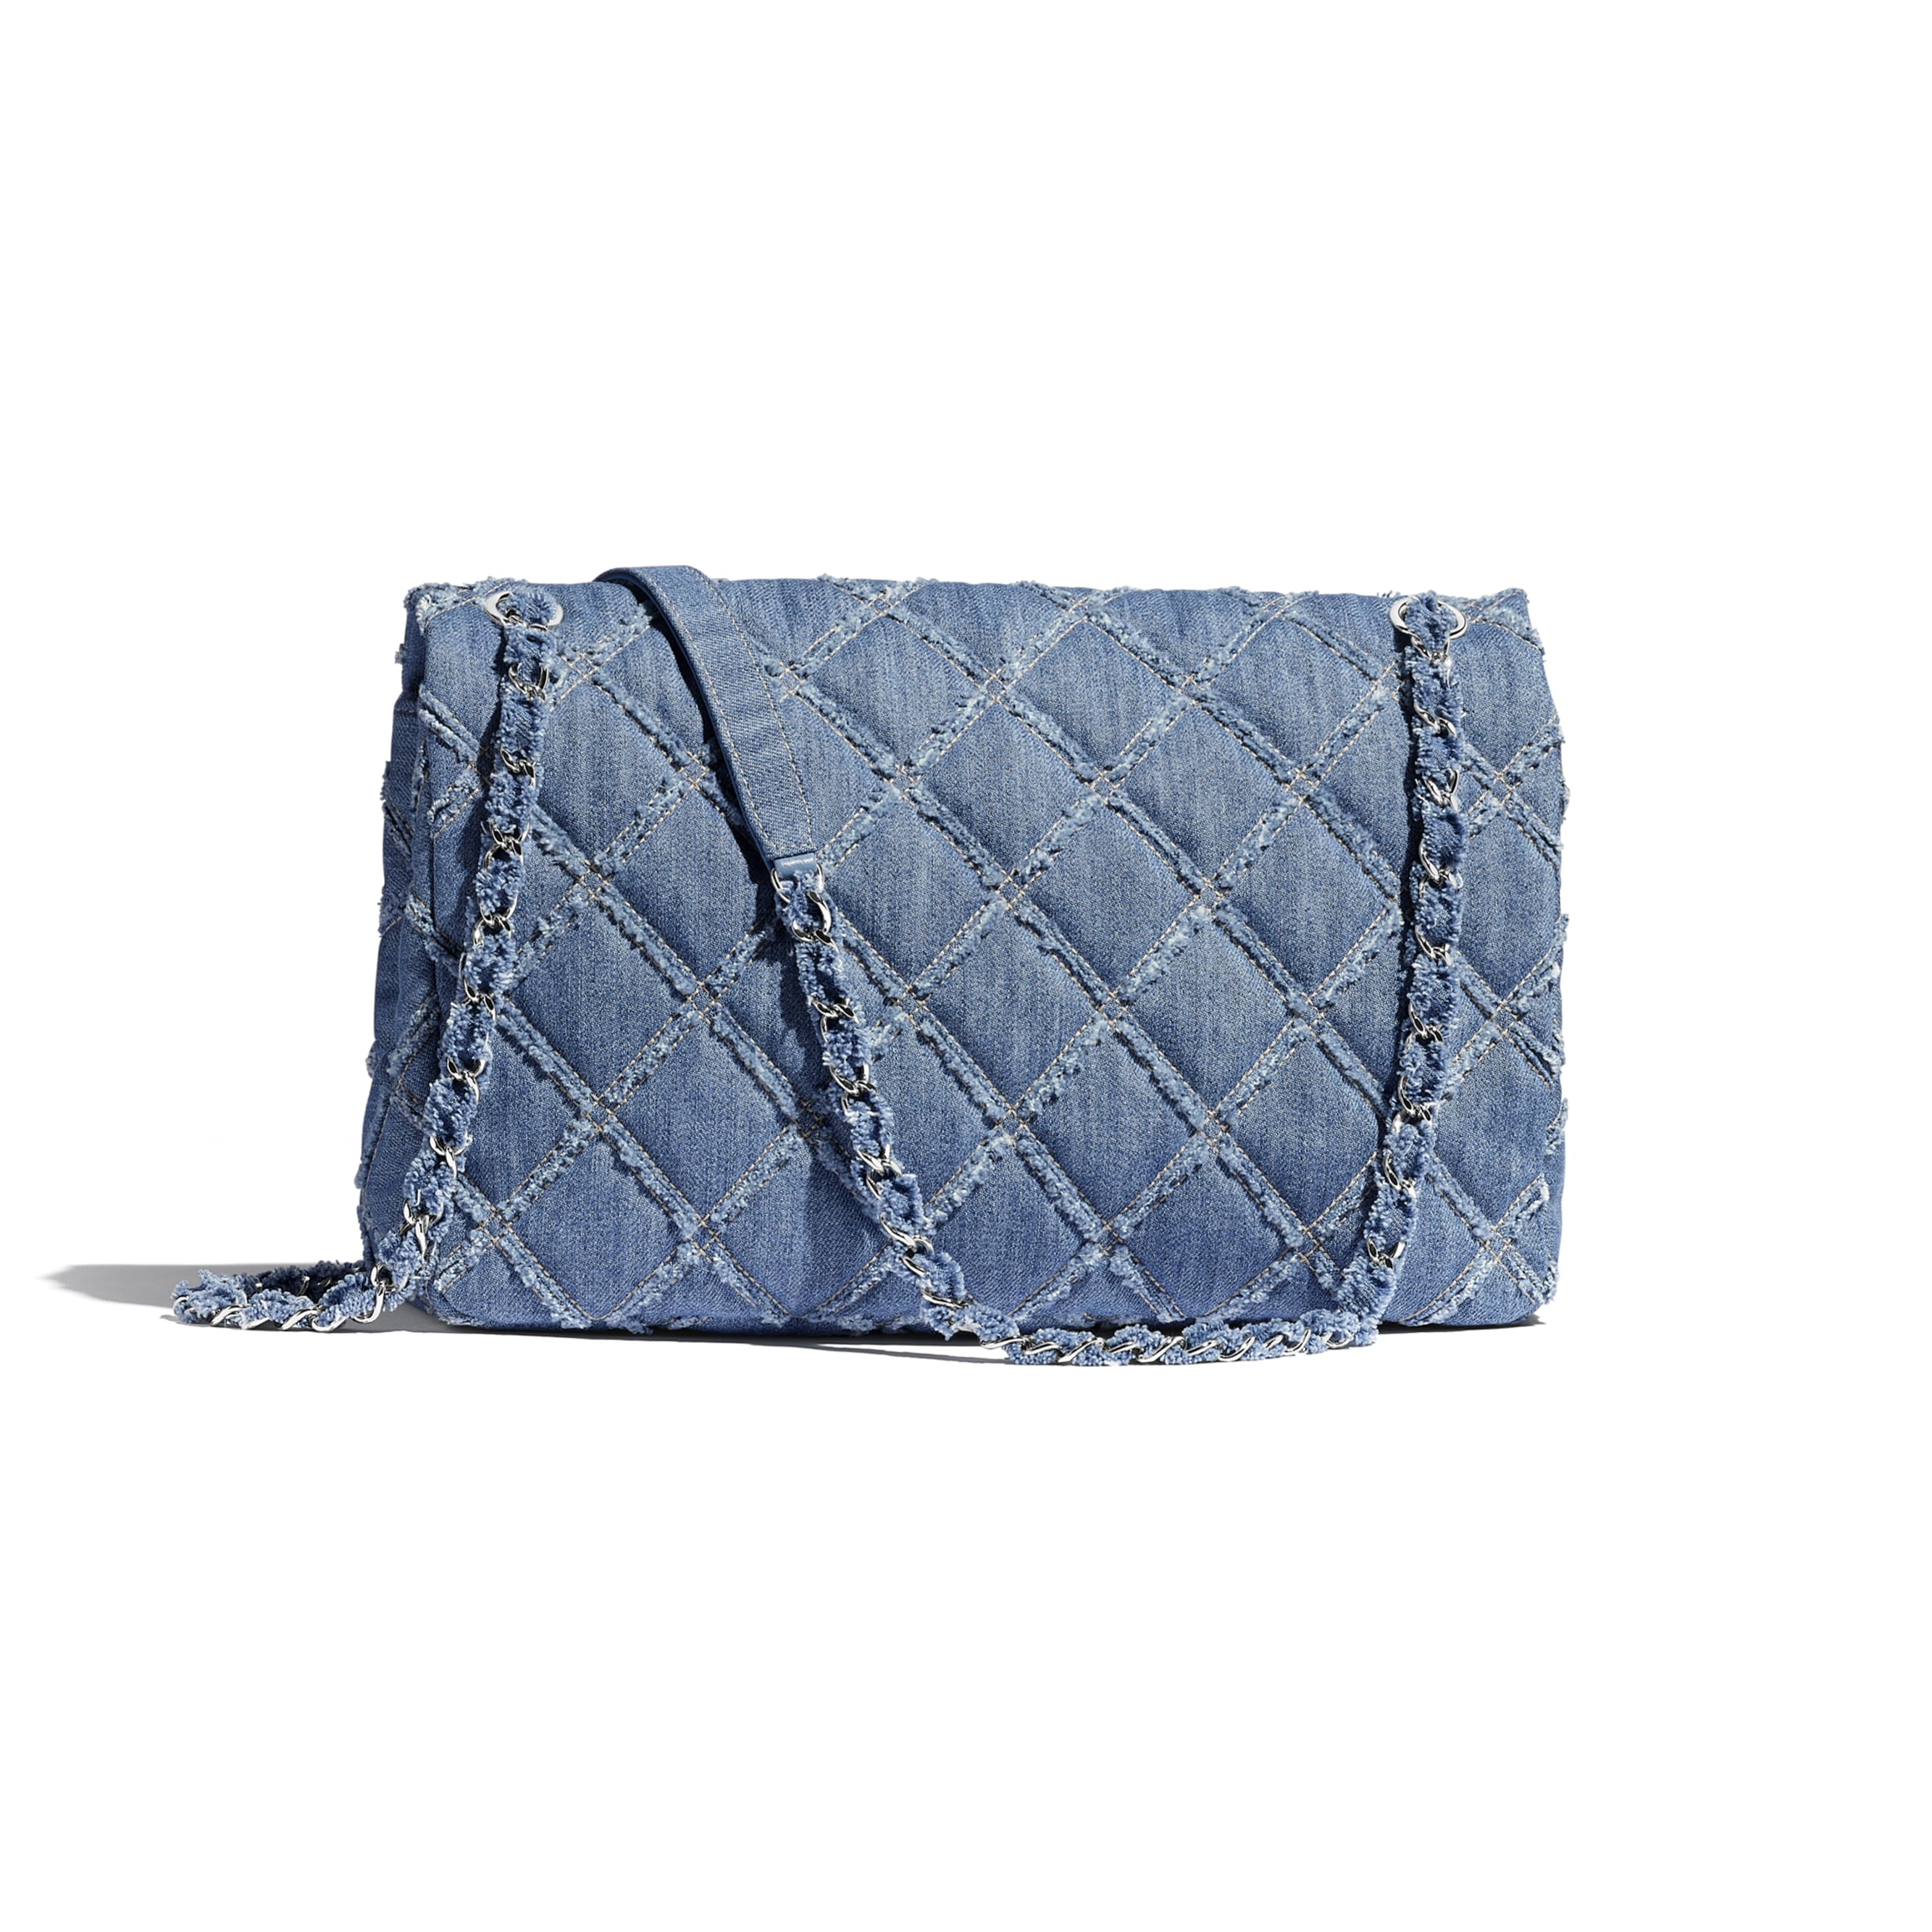 Large Flap Bag - Blue - Denim & Silver-Tone Metal - Alternative view - see standard sized version